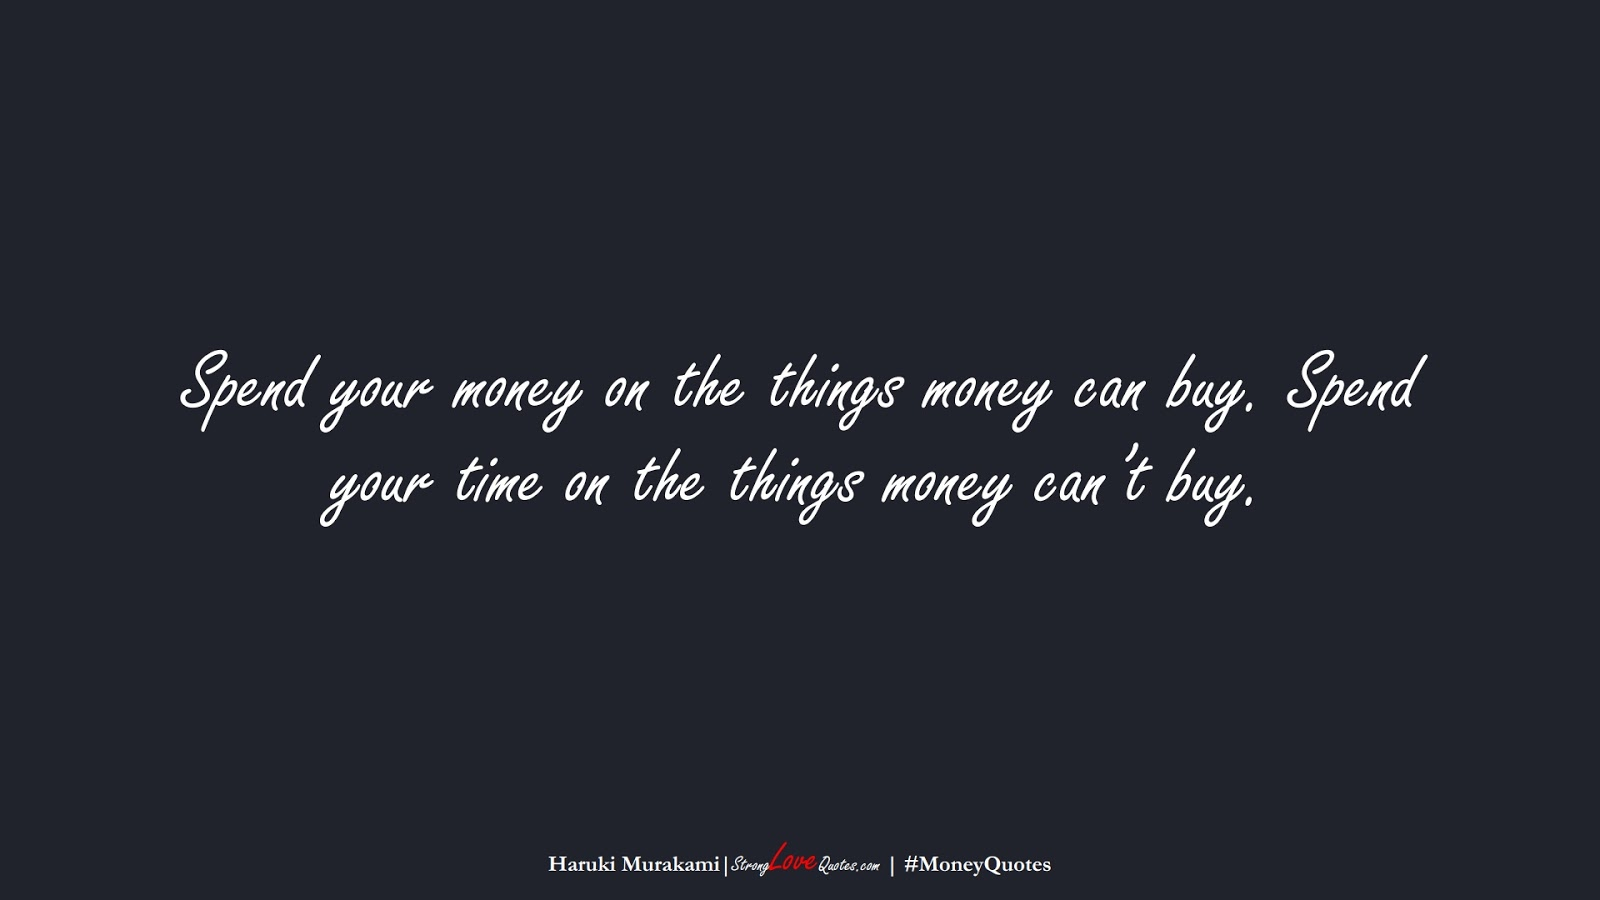 Spend your money on the things money can buy. Spend your time on the things money can't buy. (Haruki Murakami);  #MoneyQuotes